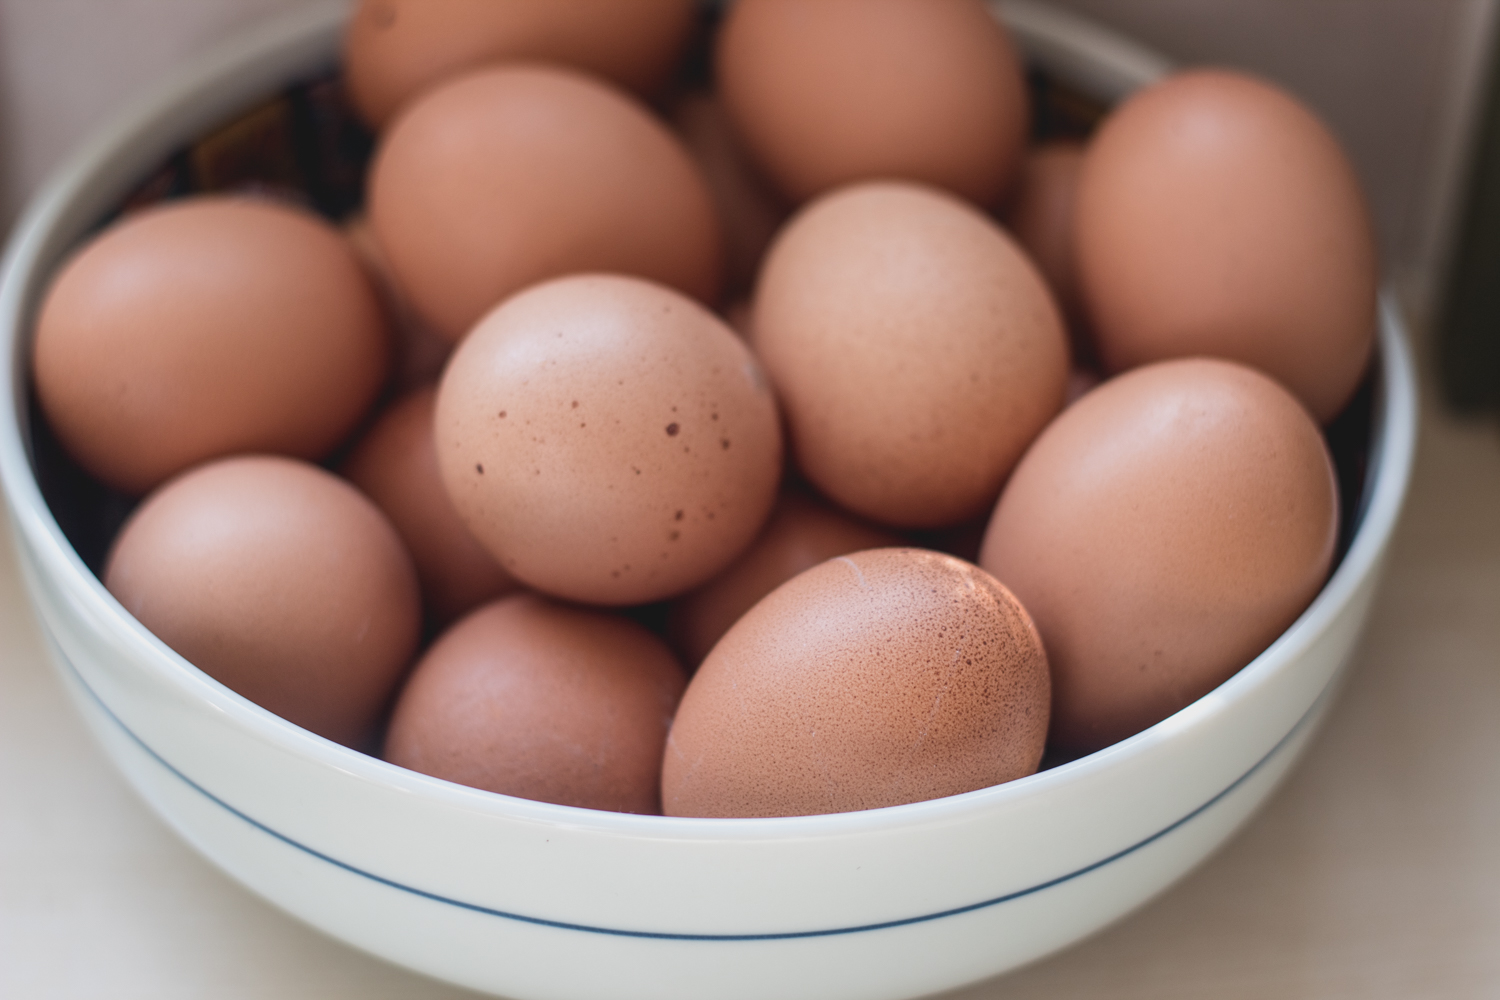 I love the contrasting texture of the eggs against the bowl. (I'm really putting all my eggs in one basket here.)